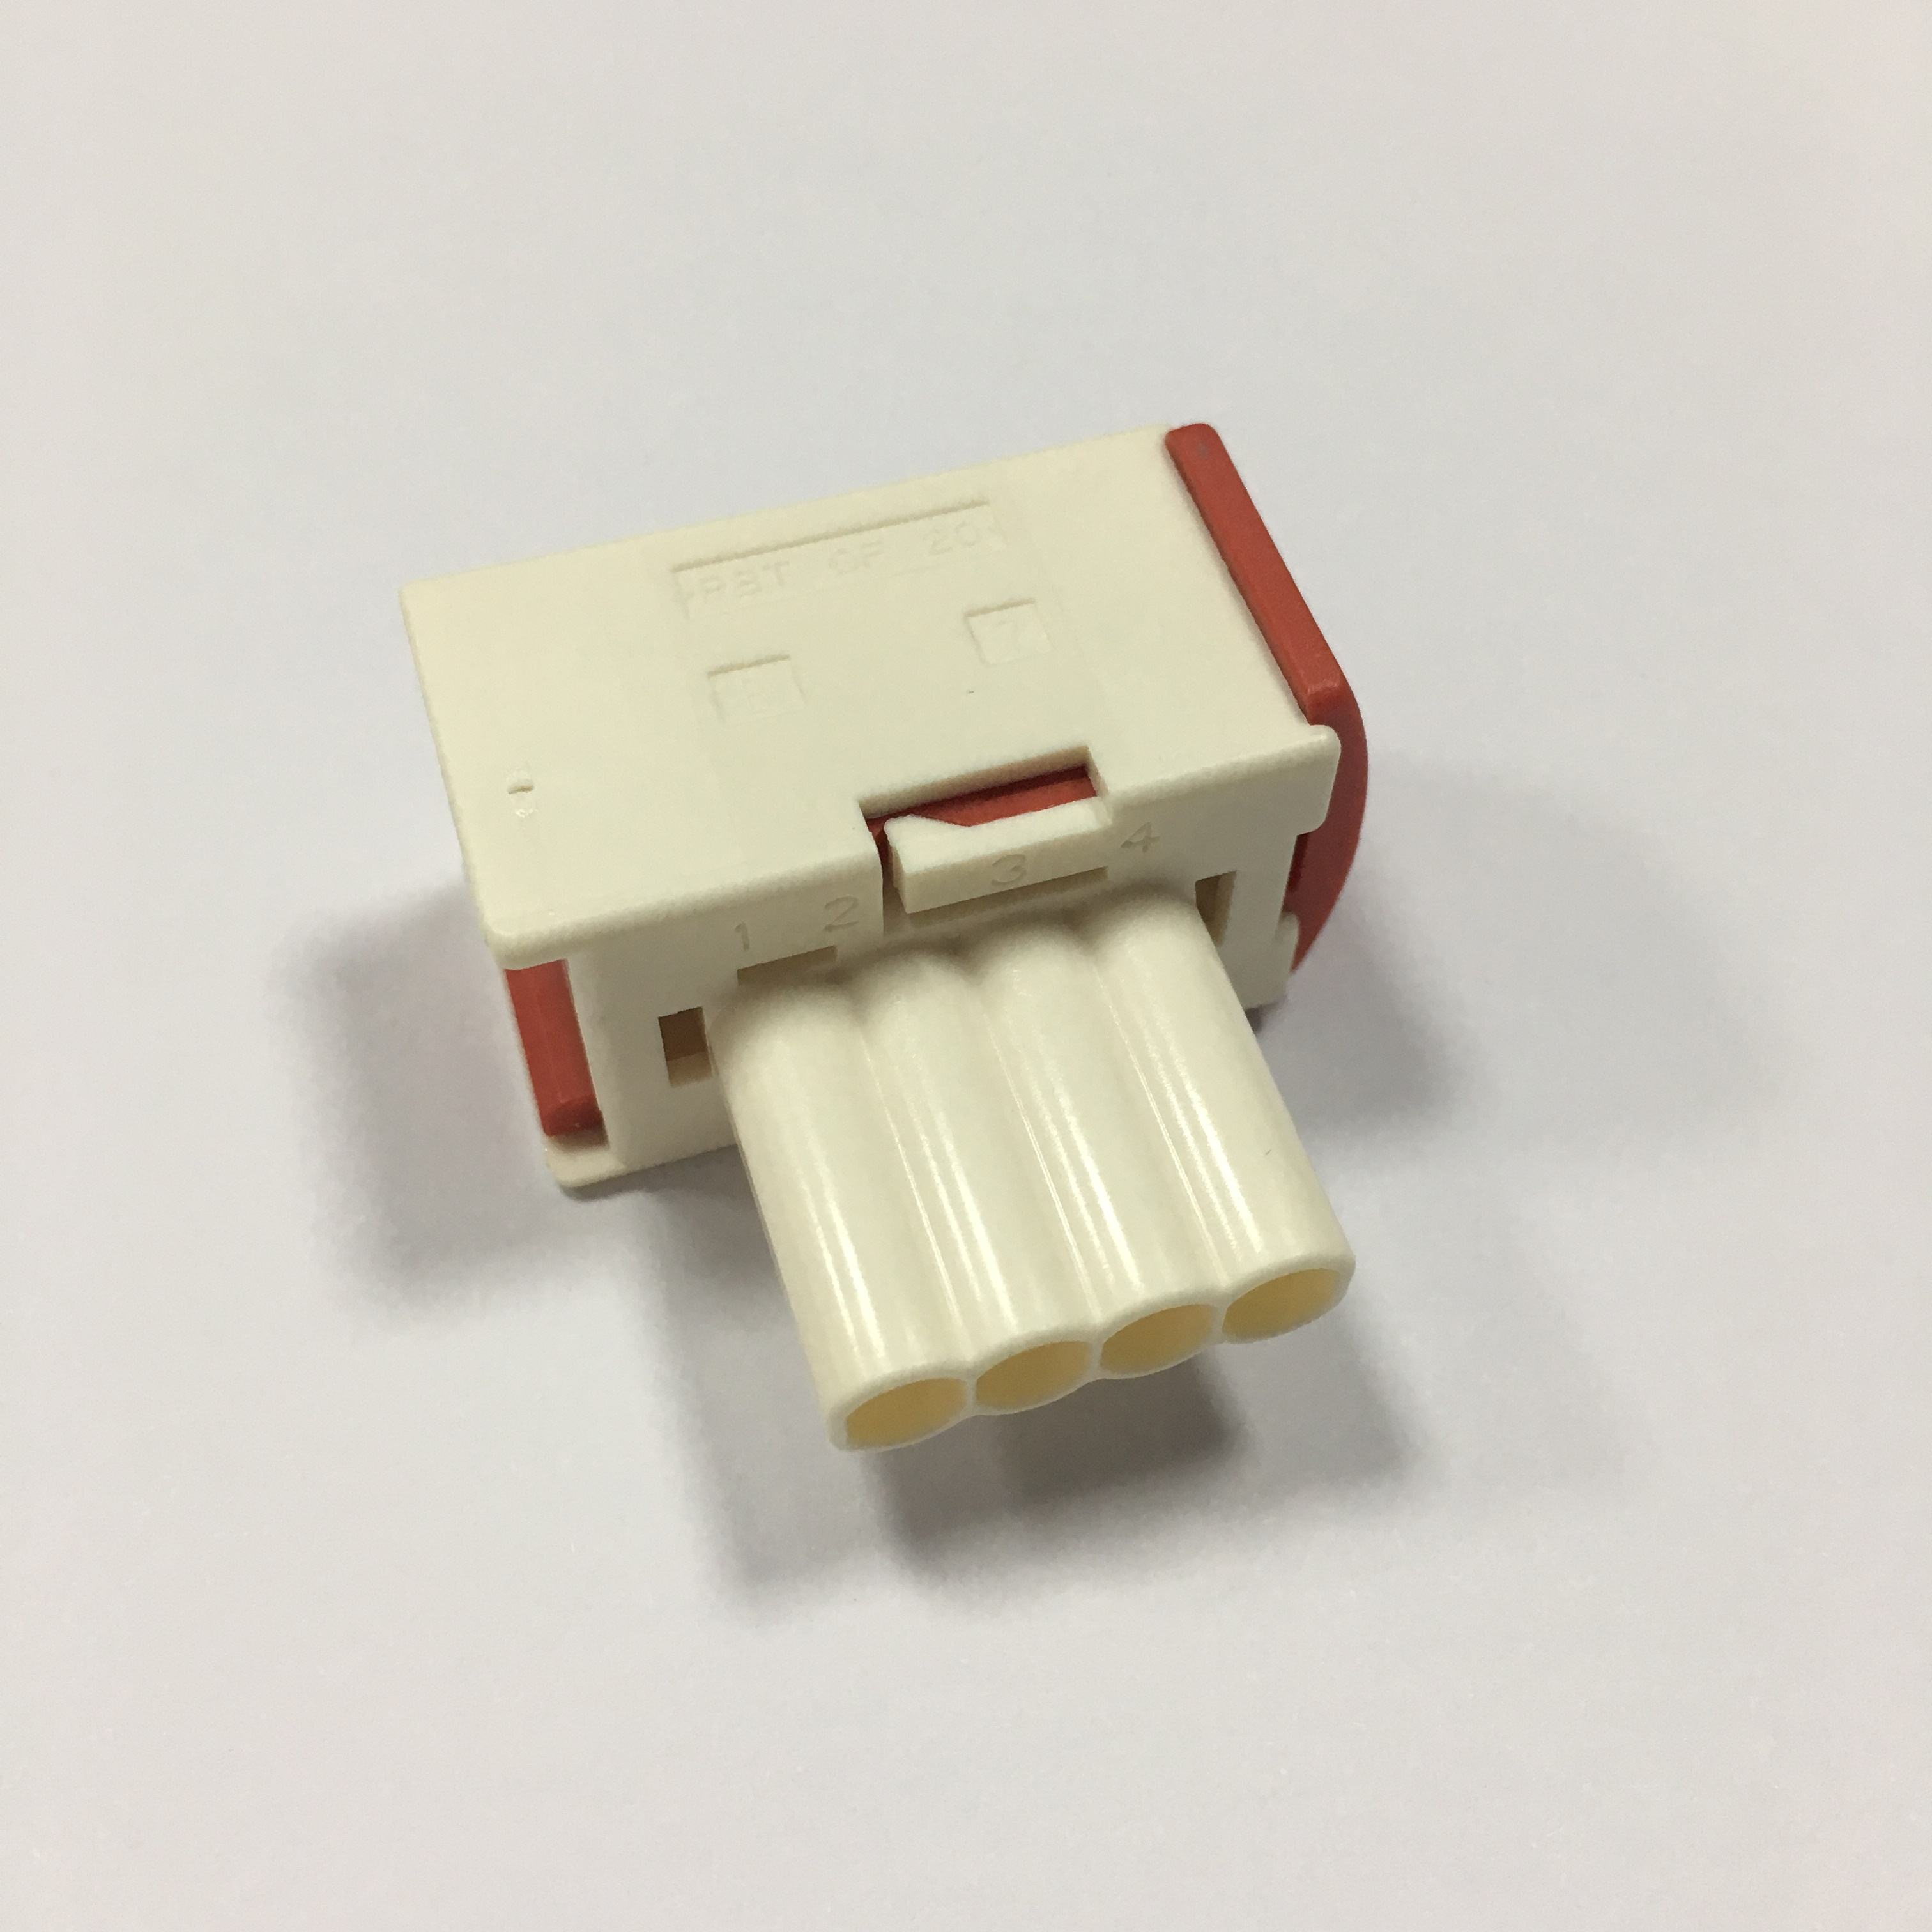 TYCO 1-828962-1 PRICE FOR 1 PIECE HOUSING CONNECTOR JPT MALE 2 WAY